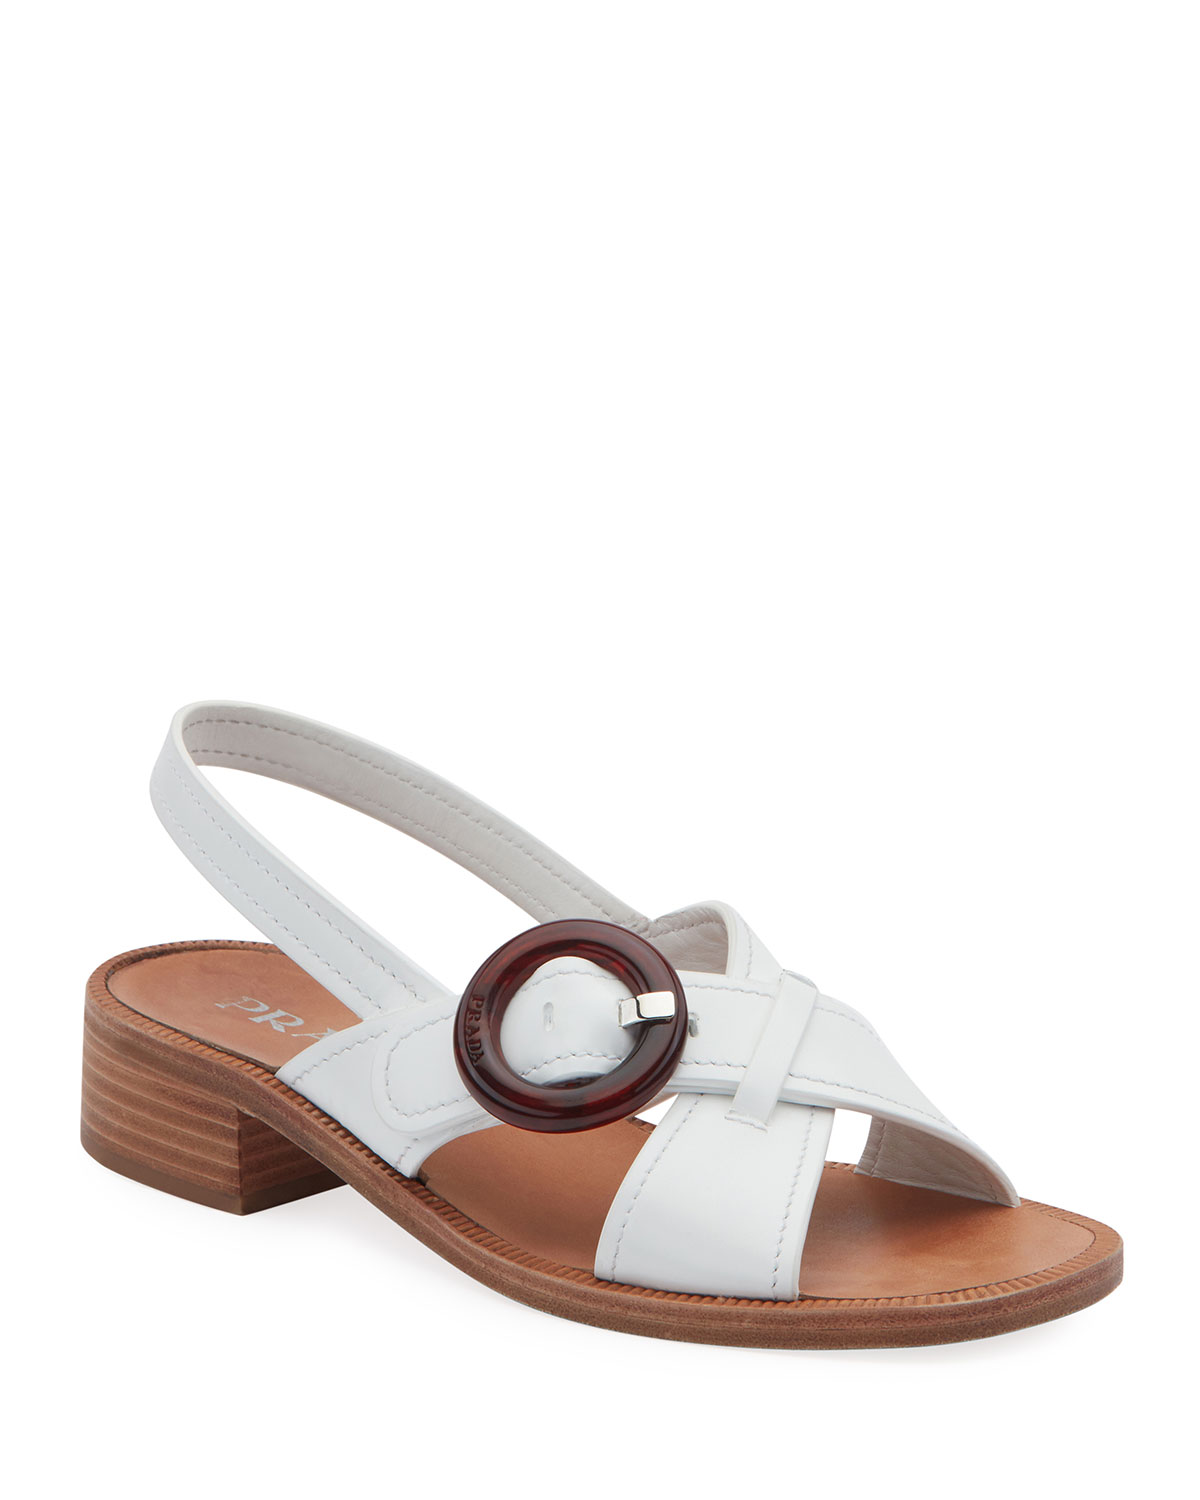 Prada Leather Buckle Flat Sandals